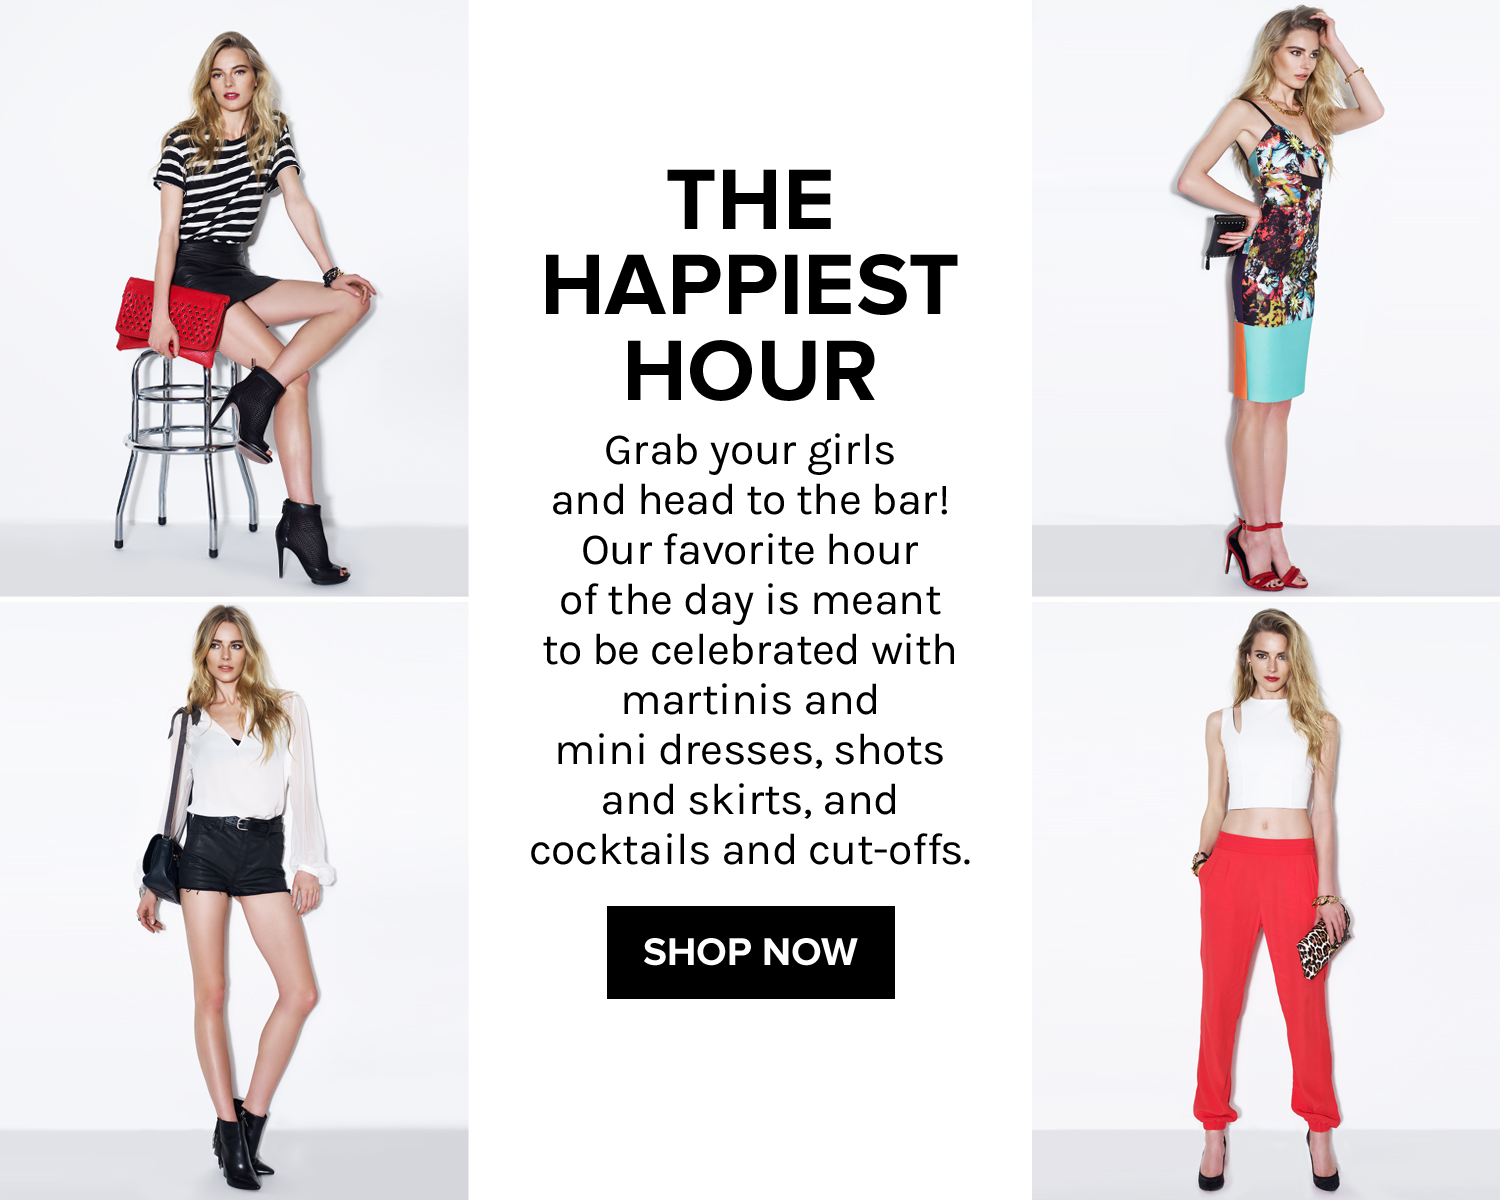 The Happiest Hour. Grab your girls and head to the bar! Our favorite hour of the day is meant to be celebrated with martinis and mini dresses, shots and skirts, and cocktails and cut-offs. SHOP NOW!